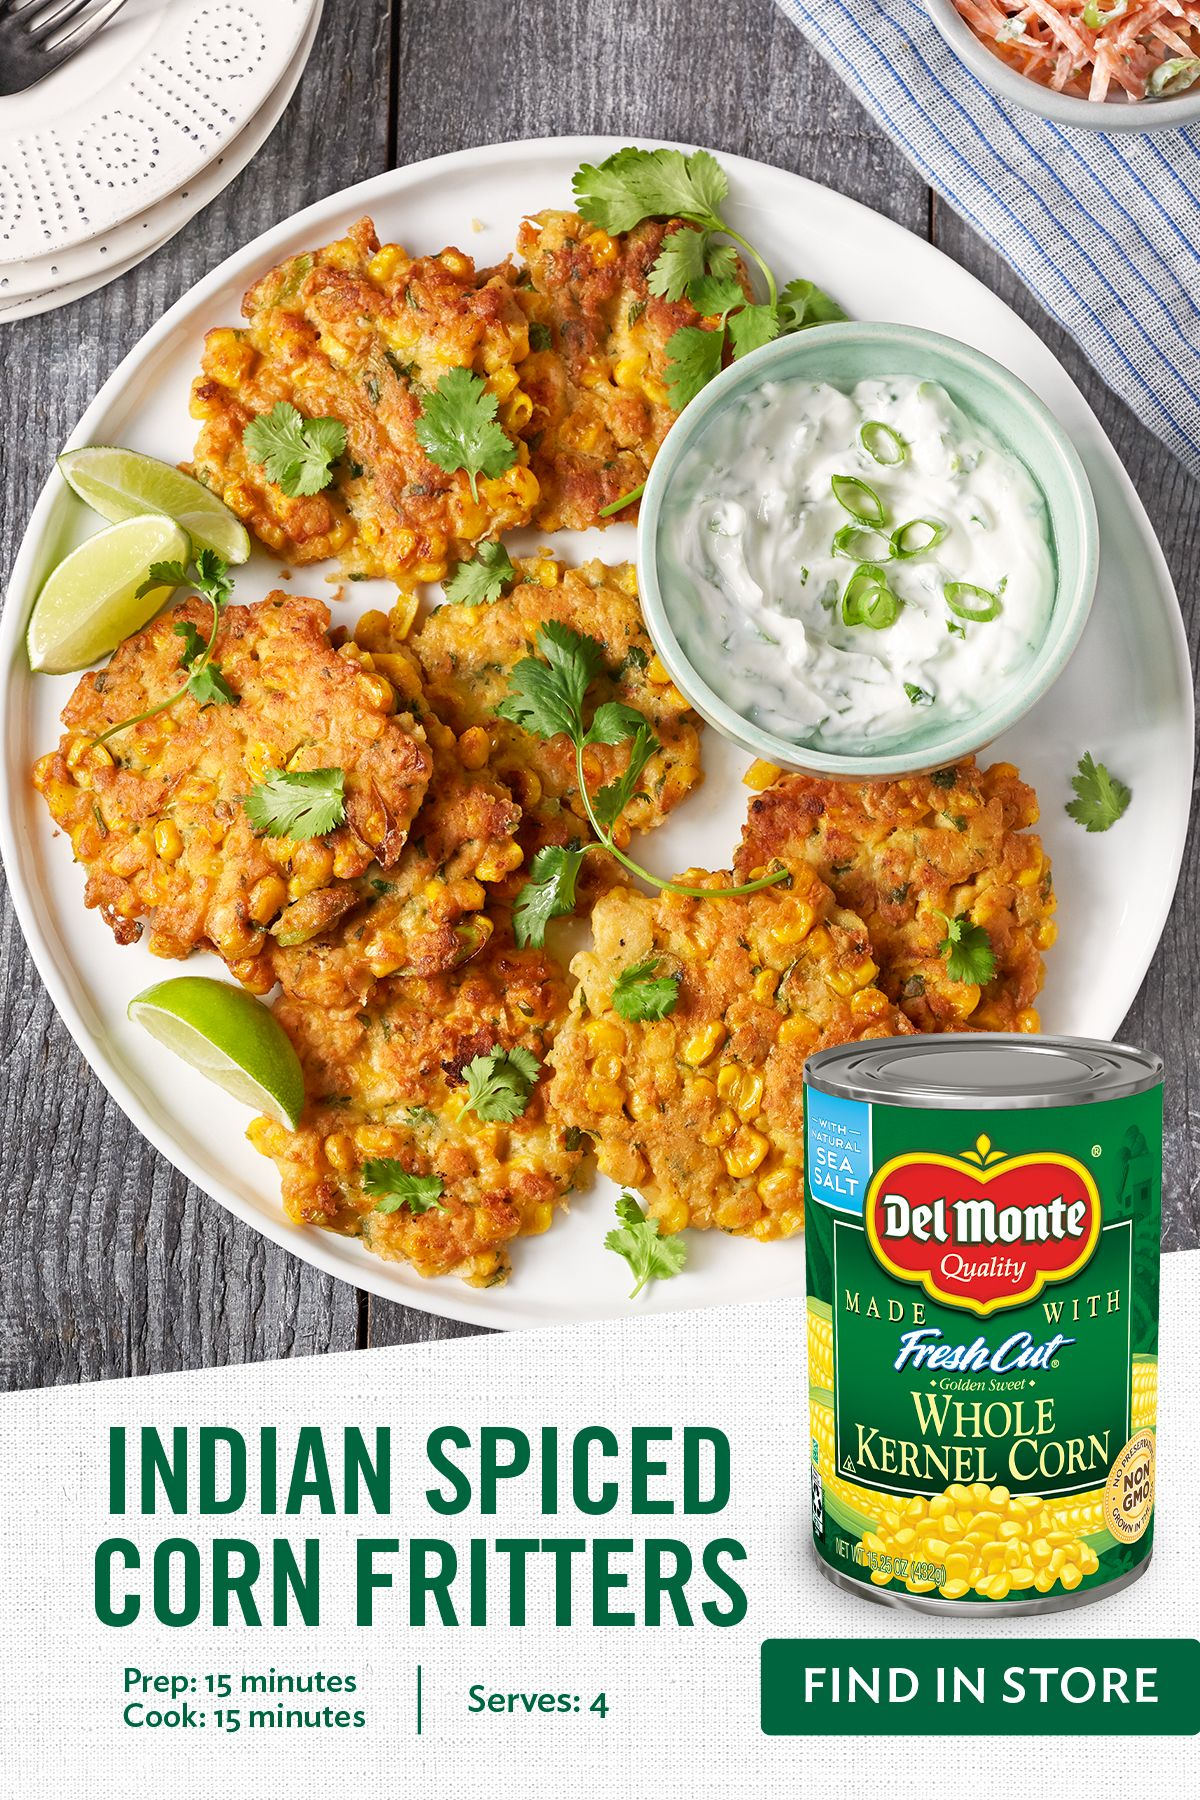 Indian Spiced Corn Fritters